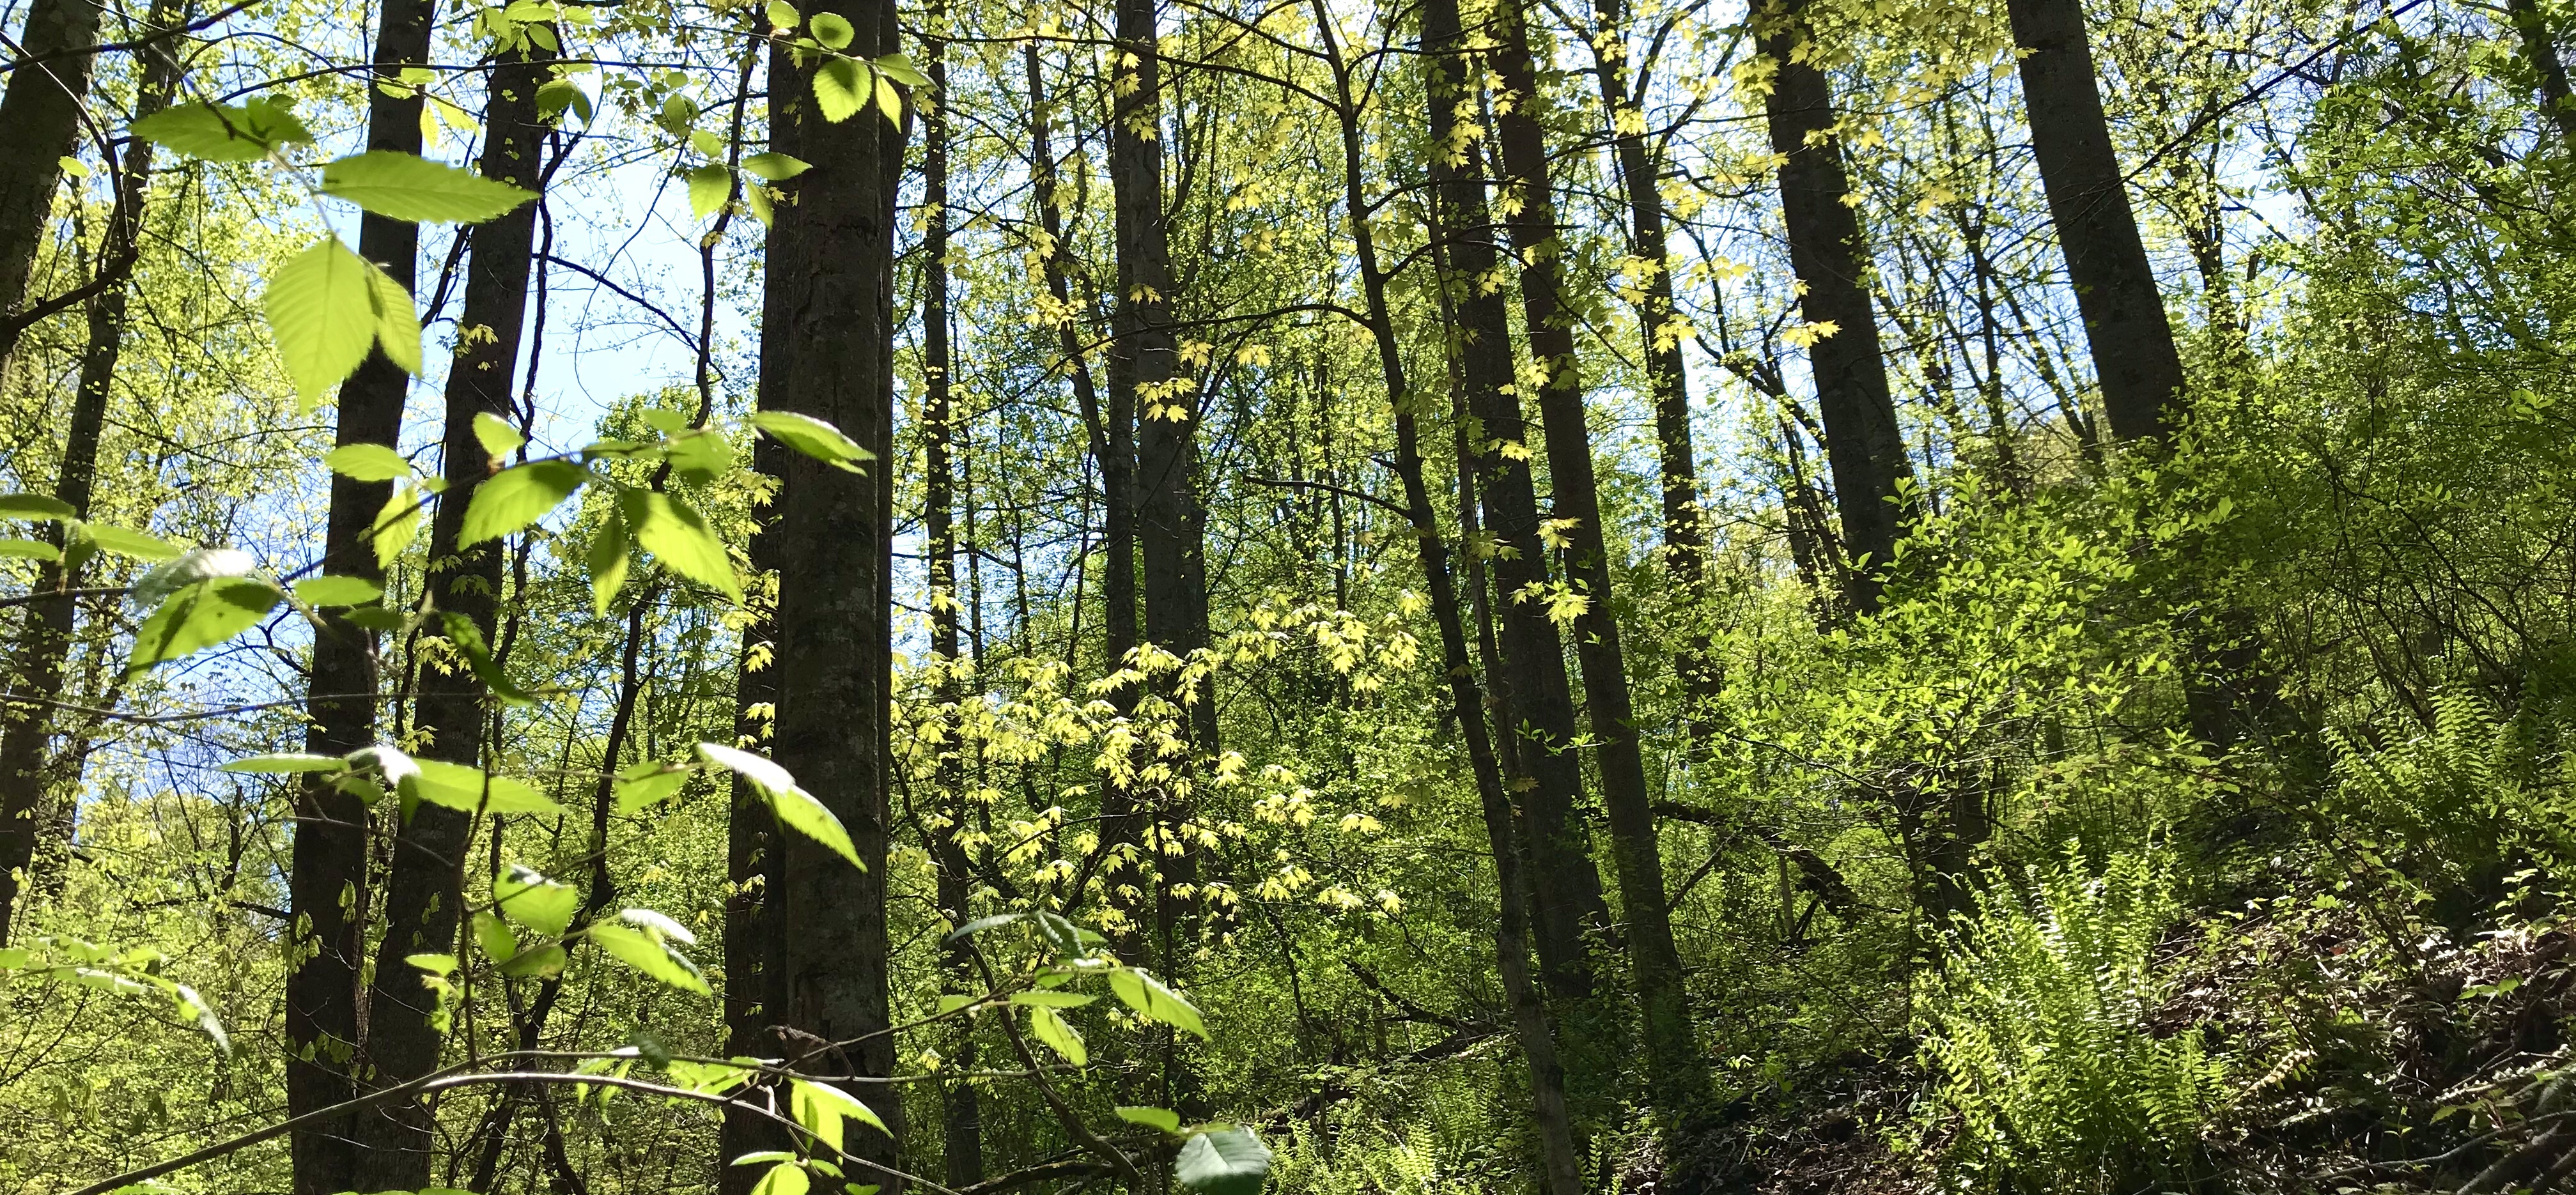 Trees leafing out in a Virginia Forest in early May photographed by MJ Seal